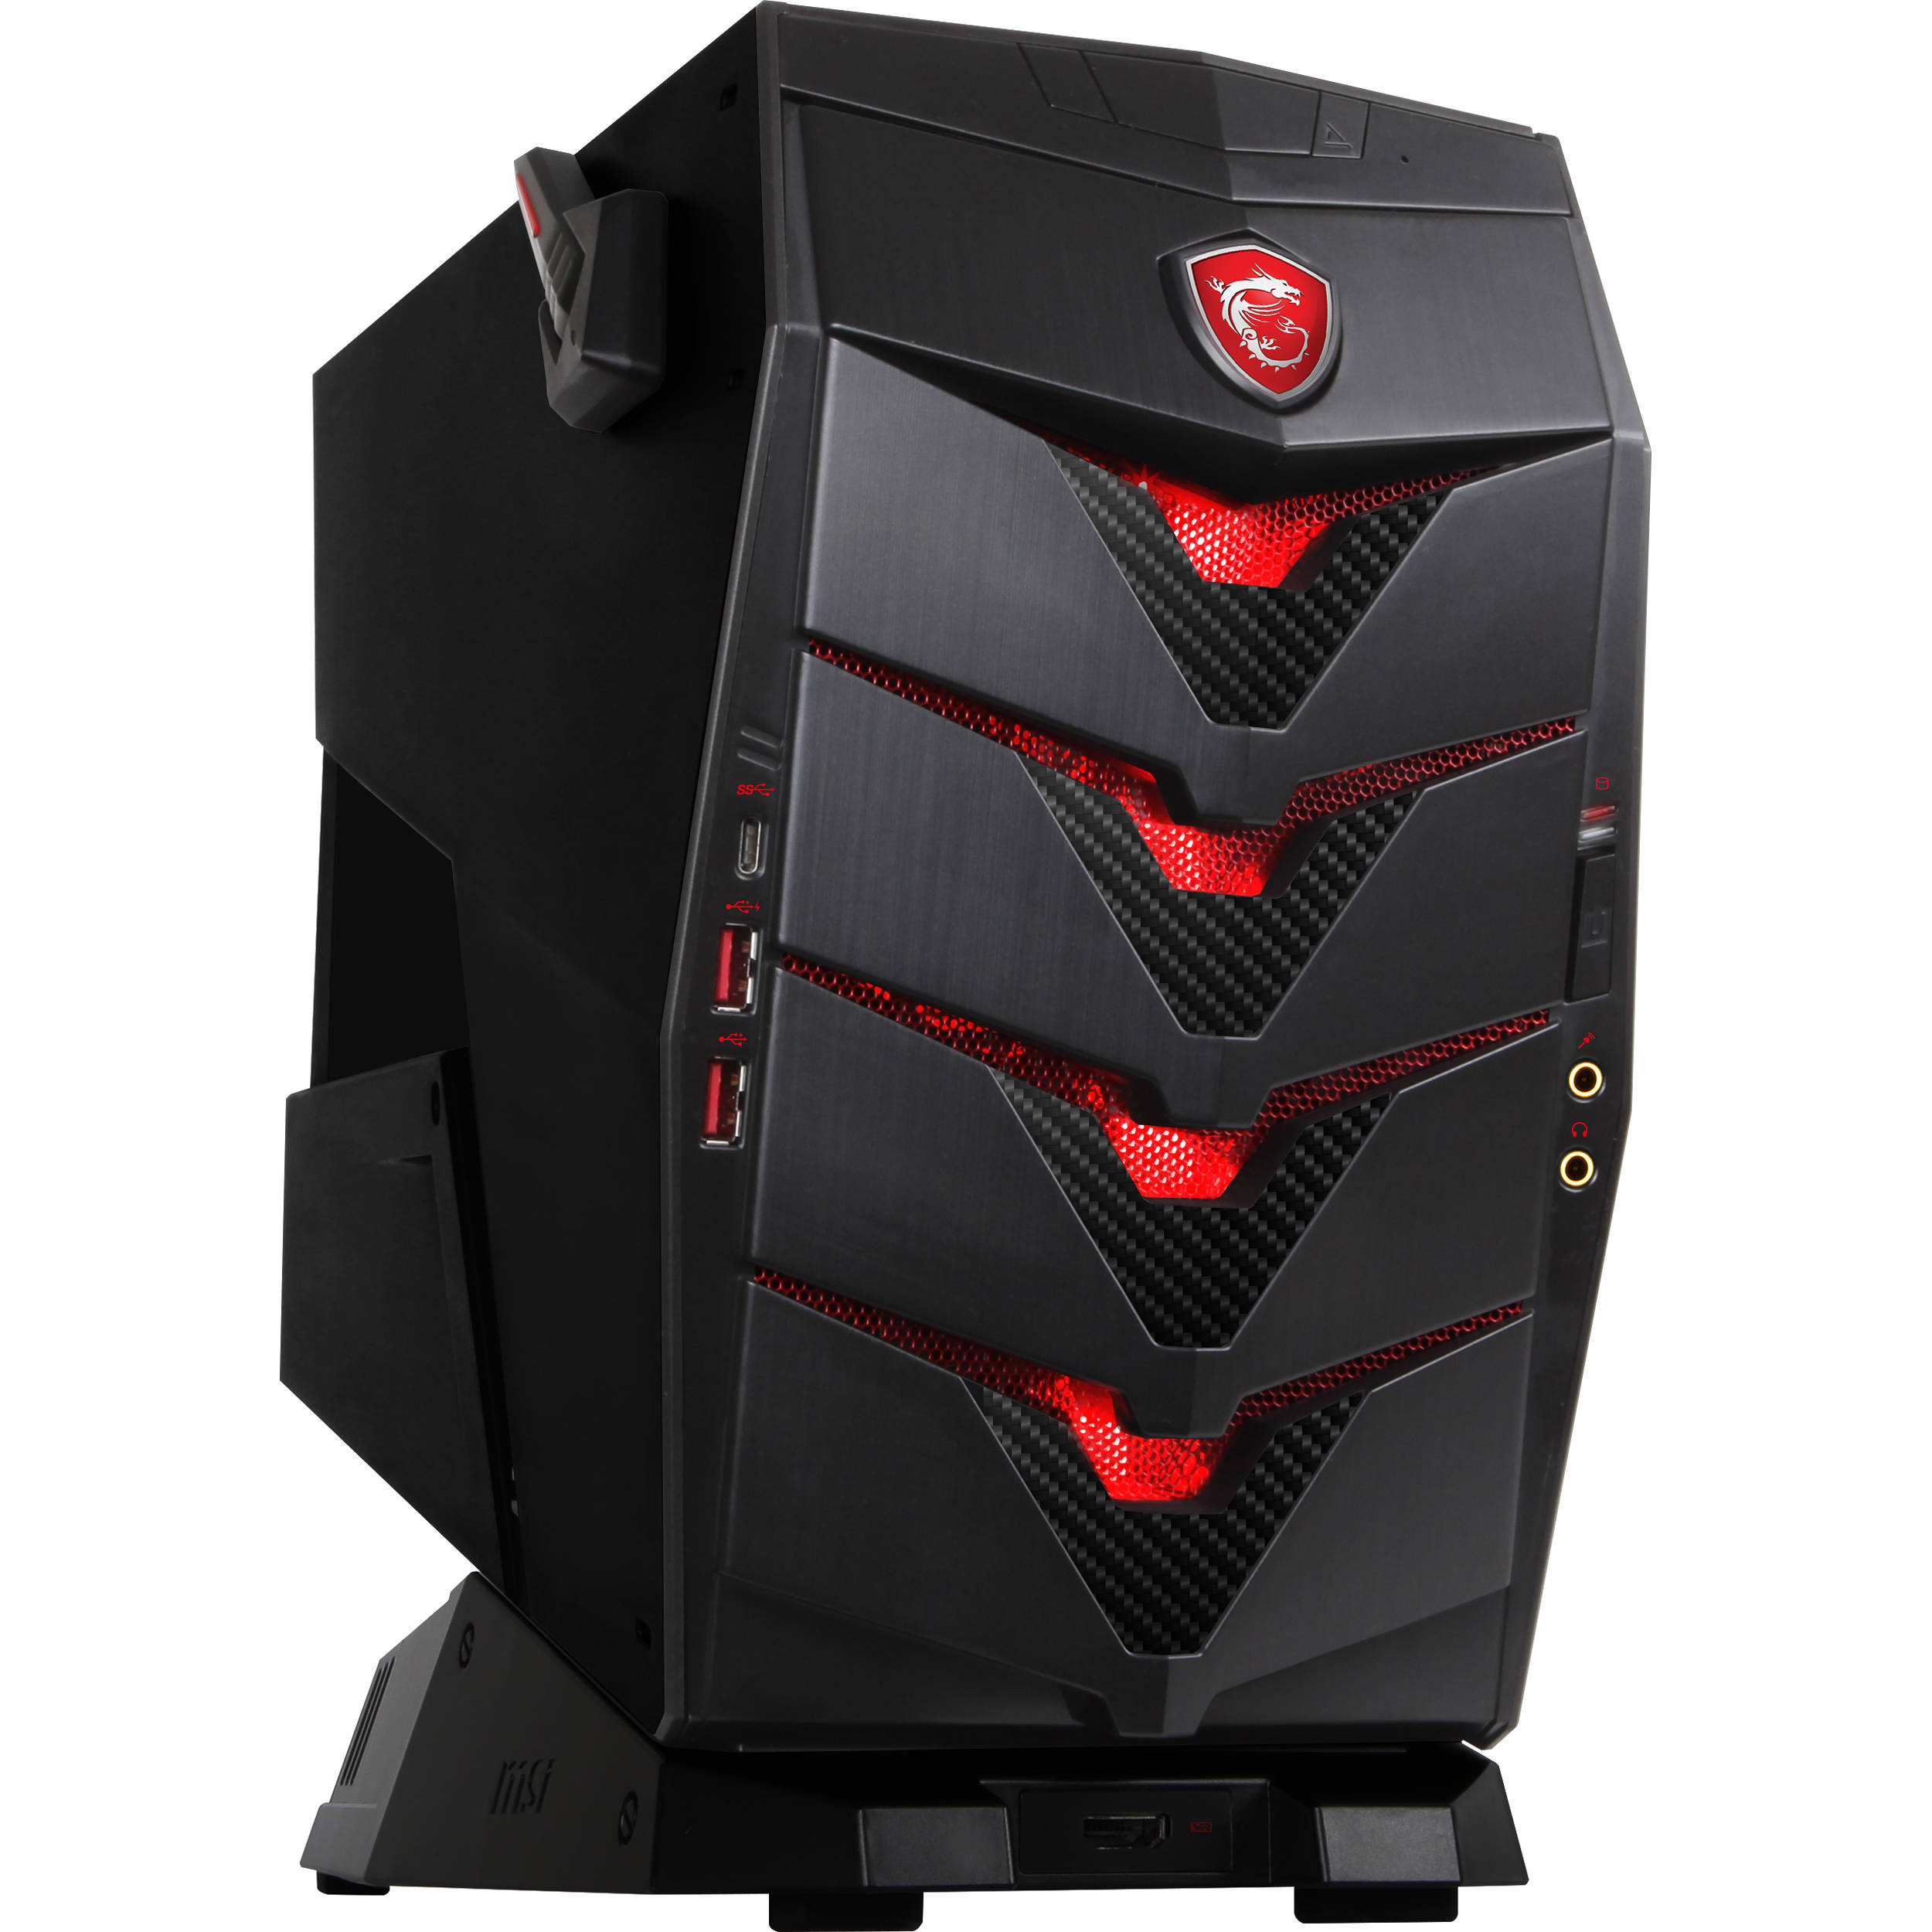 msi aegis 3 gaming desktop computer aegis 3 vr7rd 013us b h. Black Bedroom Furniture Sets. Home Design Ideas